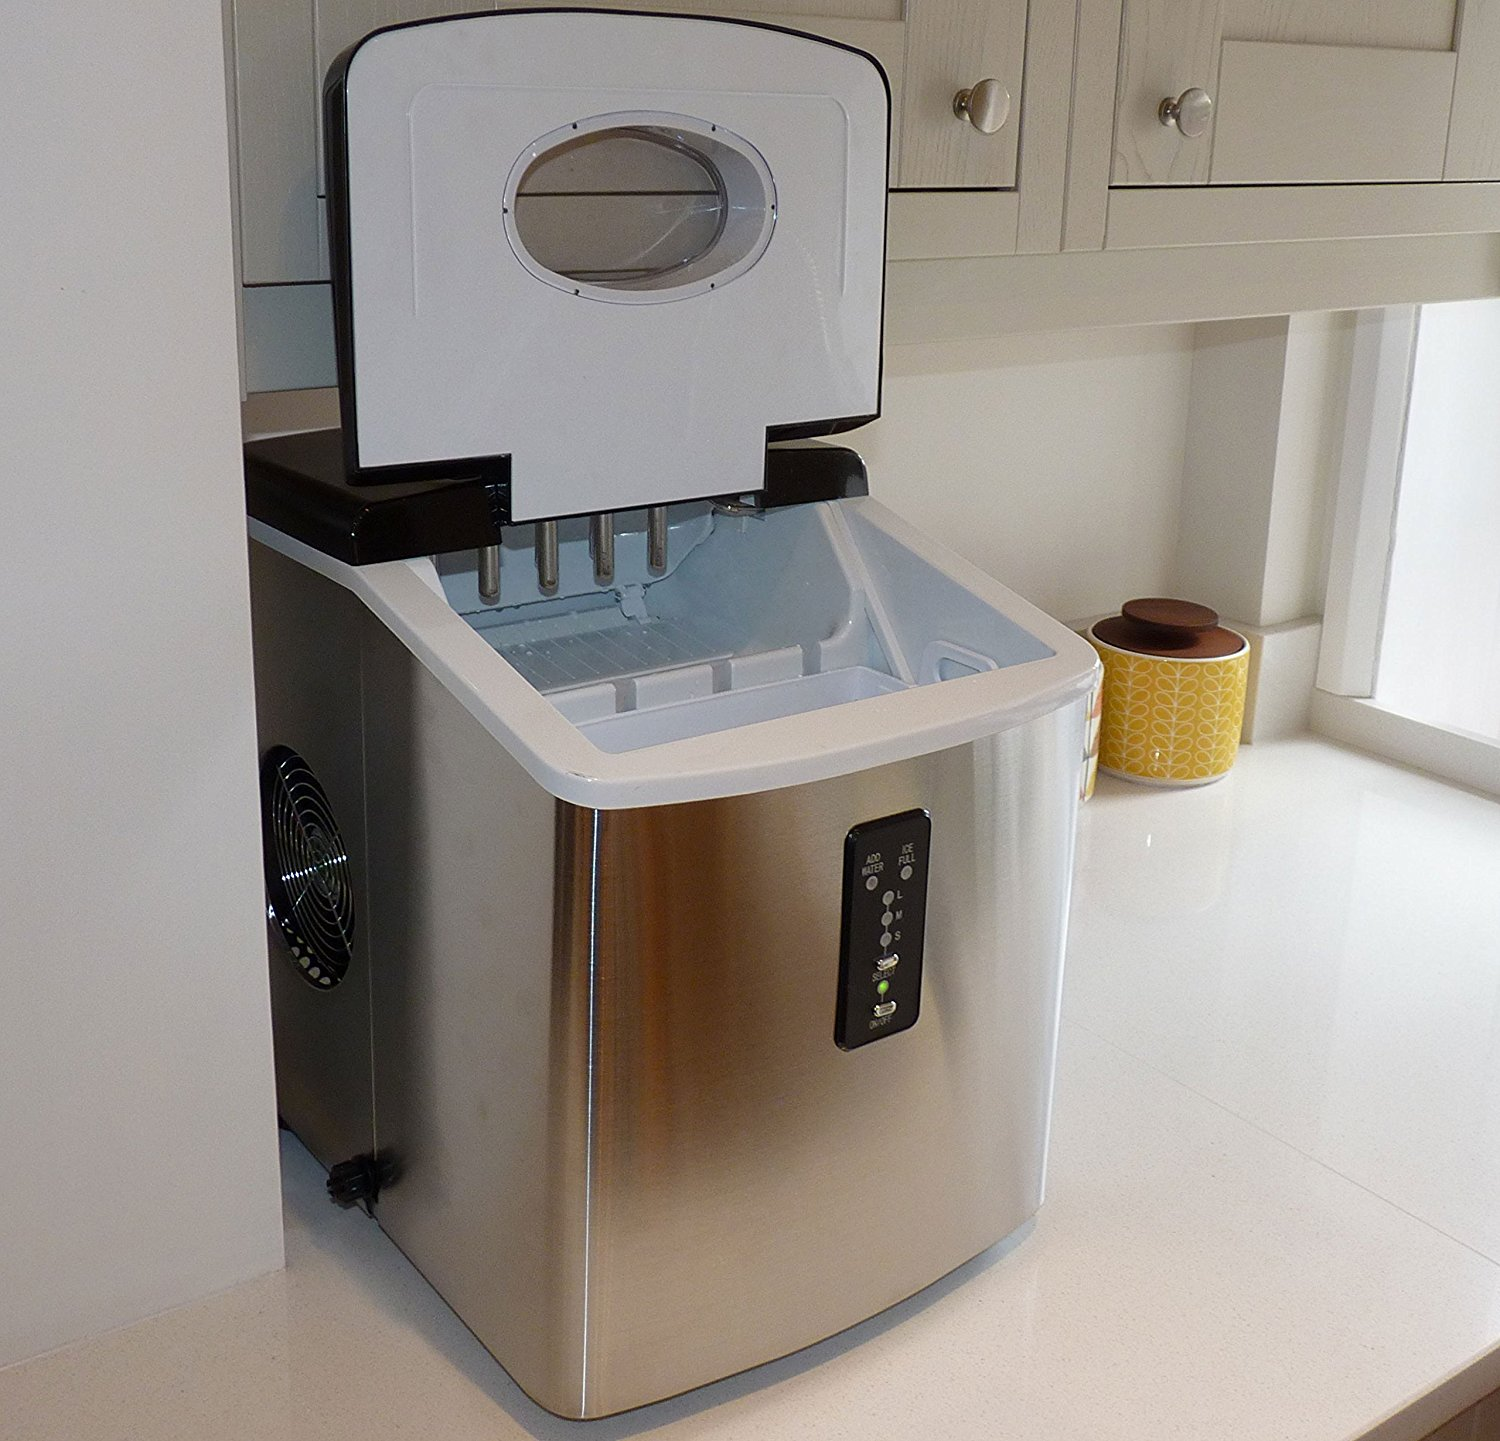 Best Outdoor & Home Kitchen Appliances Reviews at FoodPlusIce